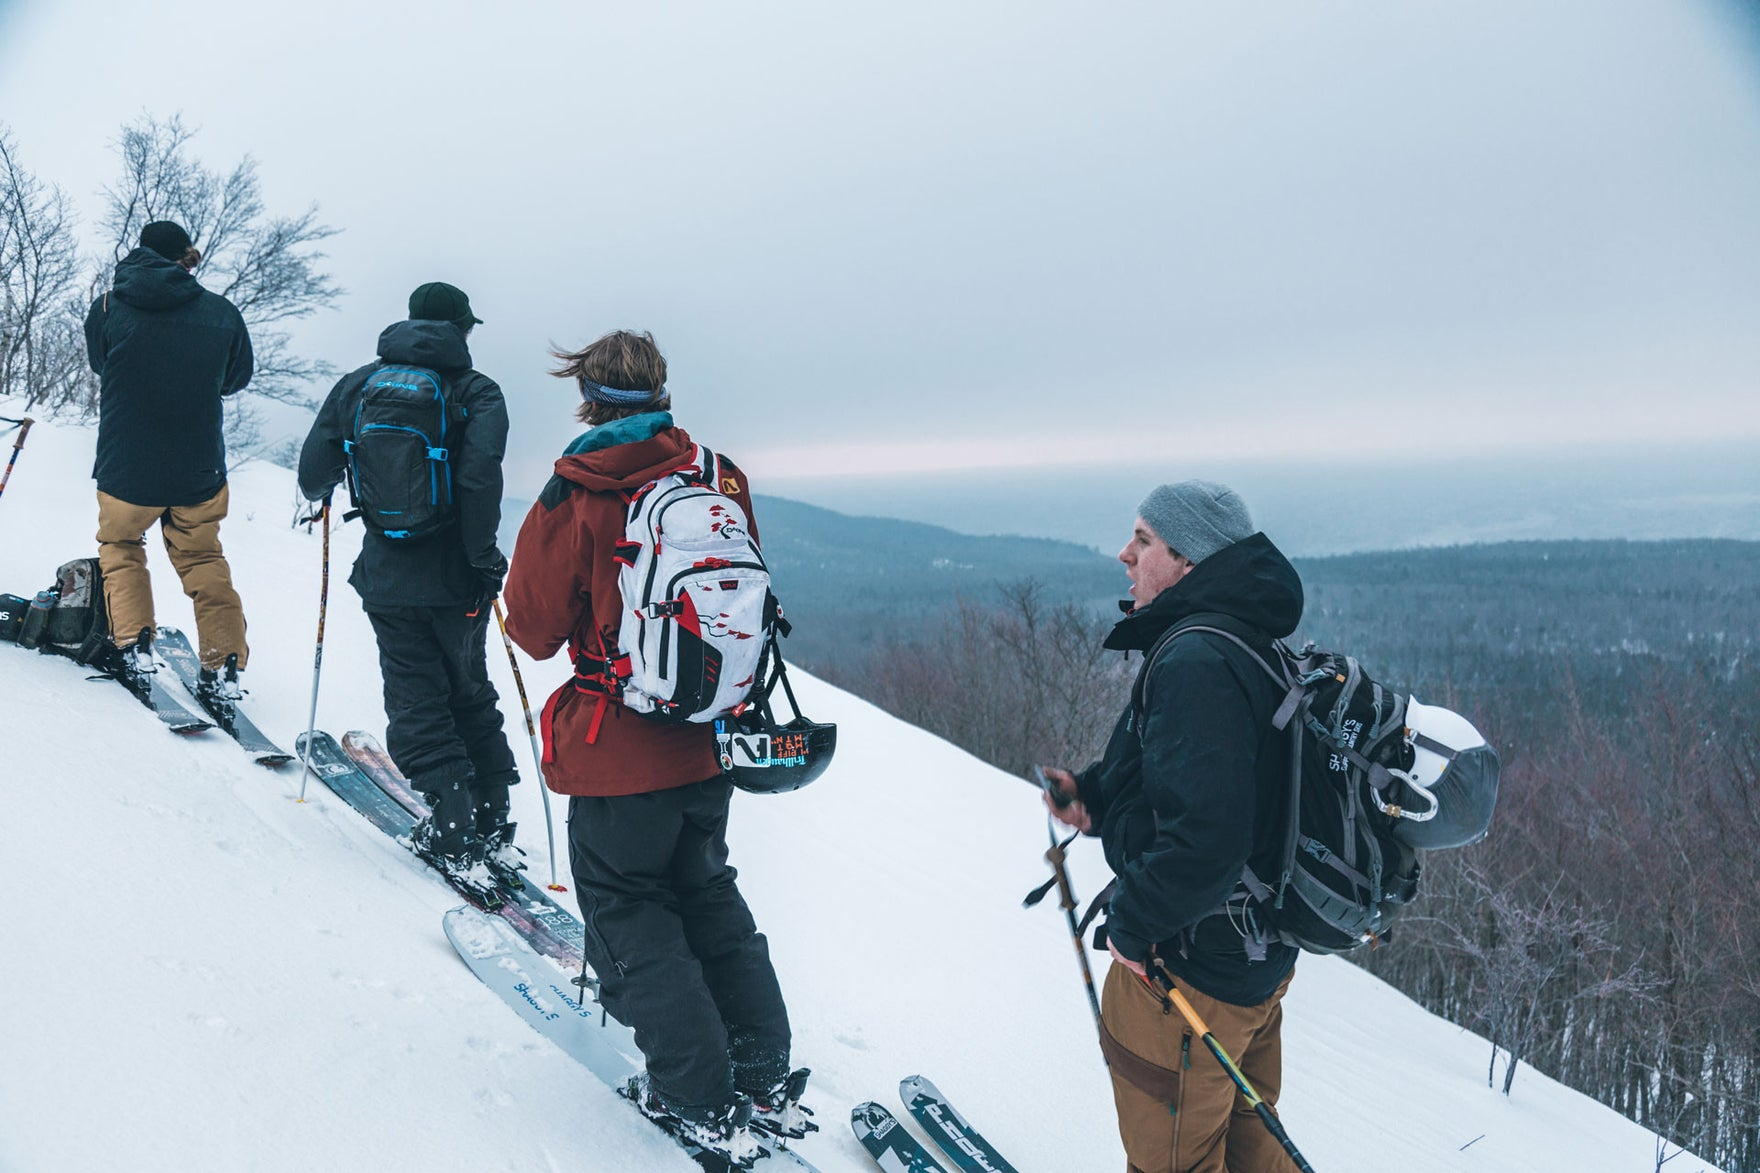 Mount Houghton - Touring one of Michigan's Largest